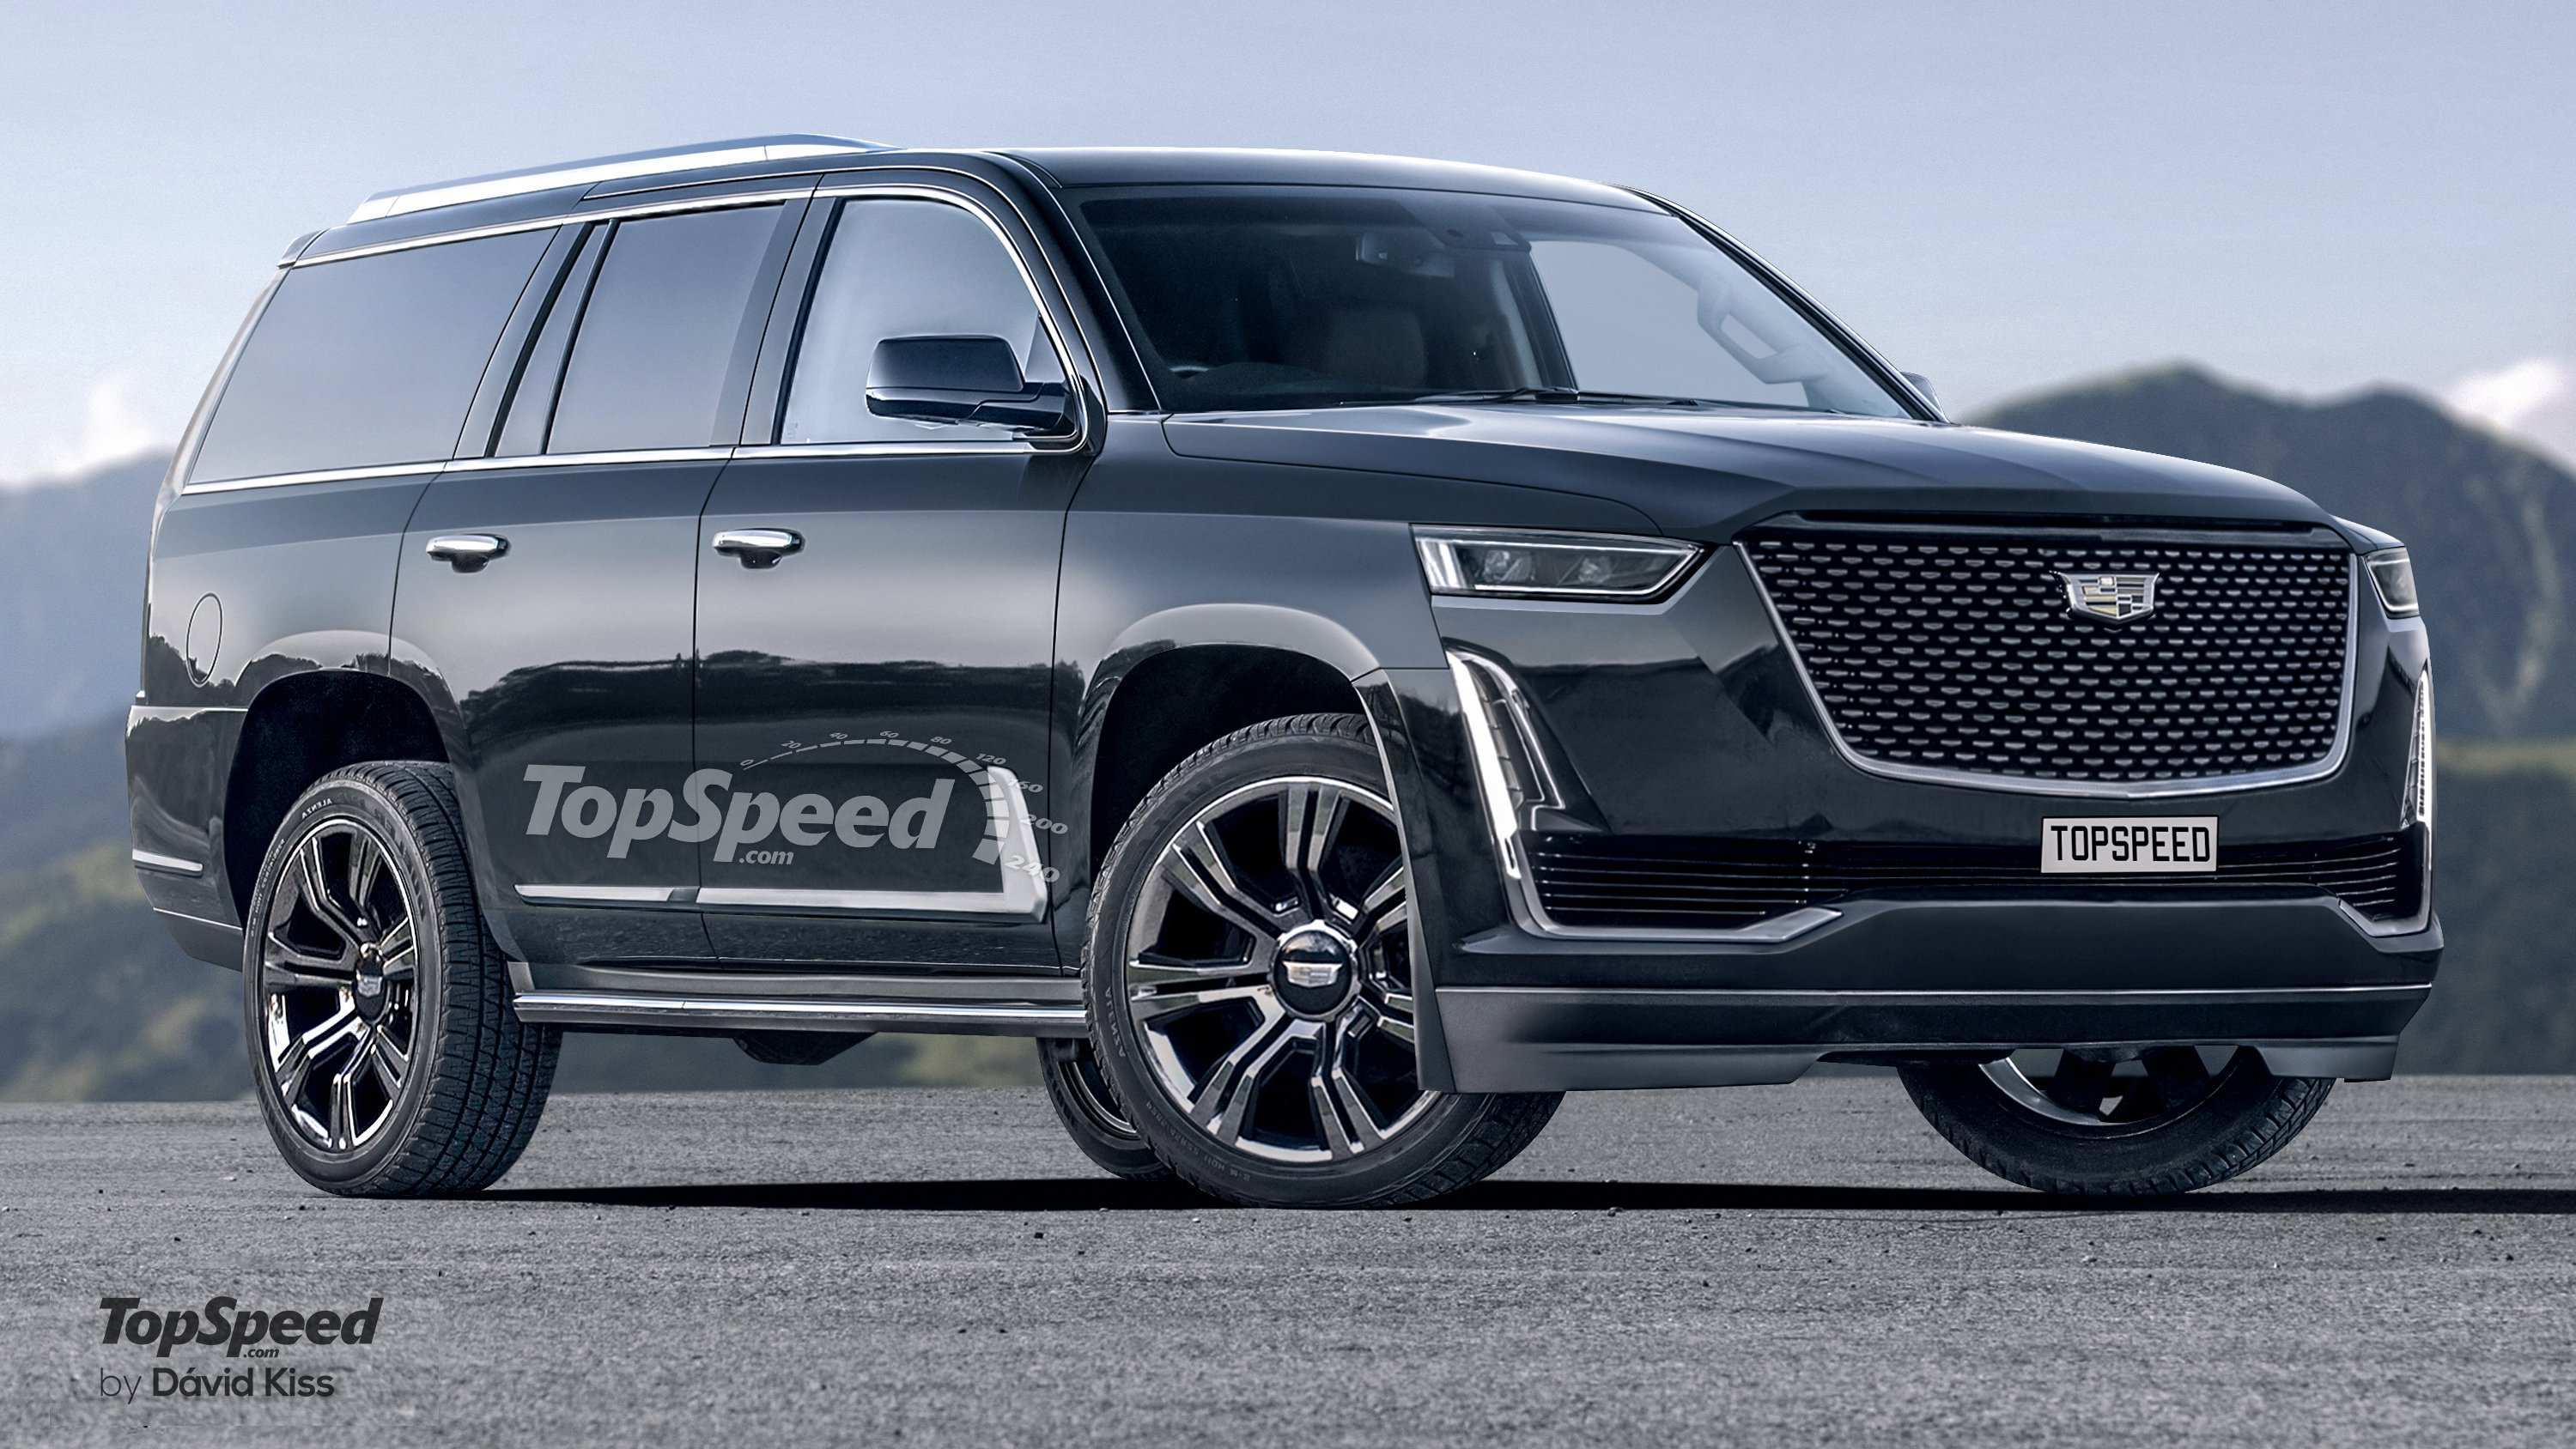 71 Best Pictures Of The 2020 Cadillac Escalade Research New